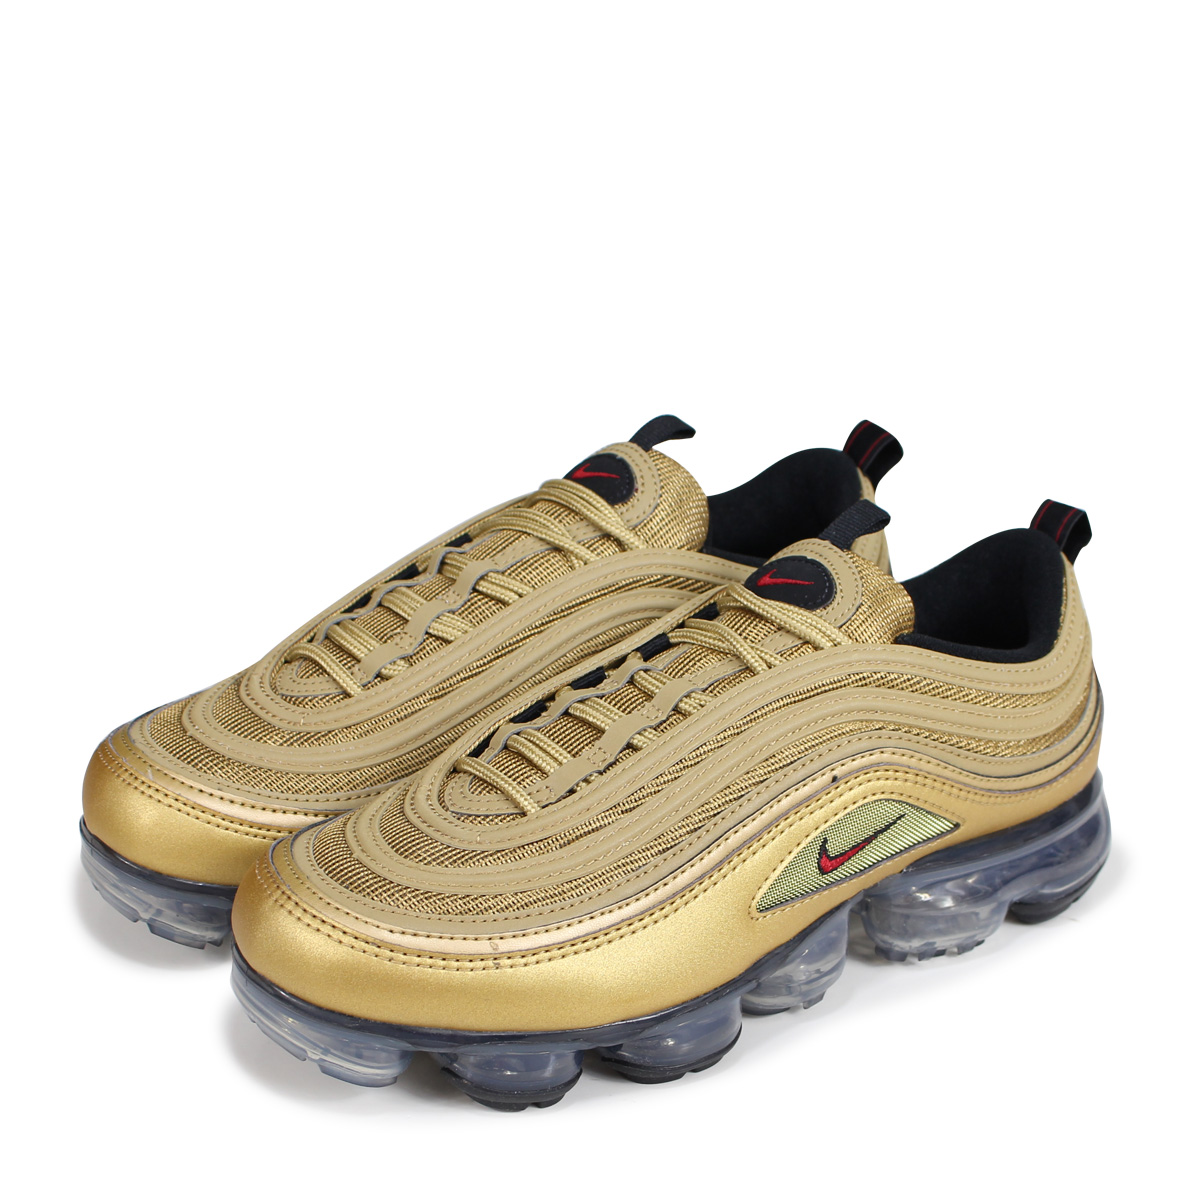 wholesale dealer d3b21 03936 Nike NIKE air vapor max 97 sneakers men AIR VAPORMAX 97 AJ7291-700 gold  [187]